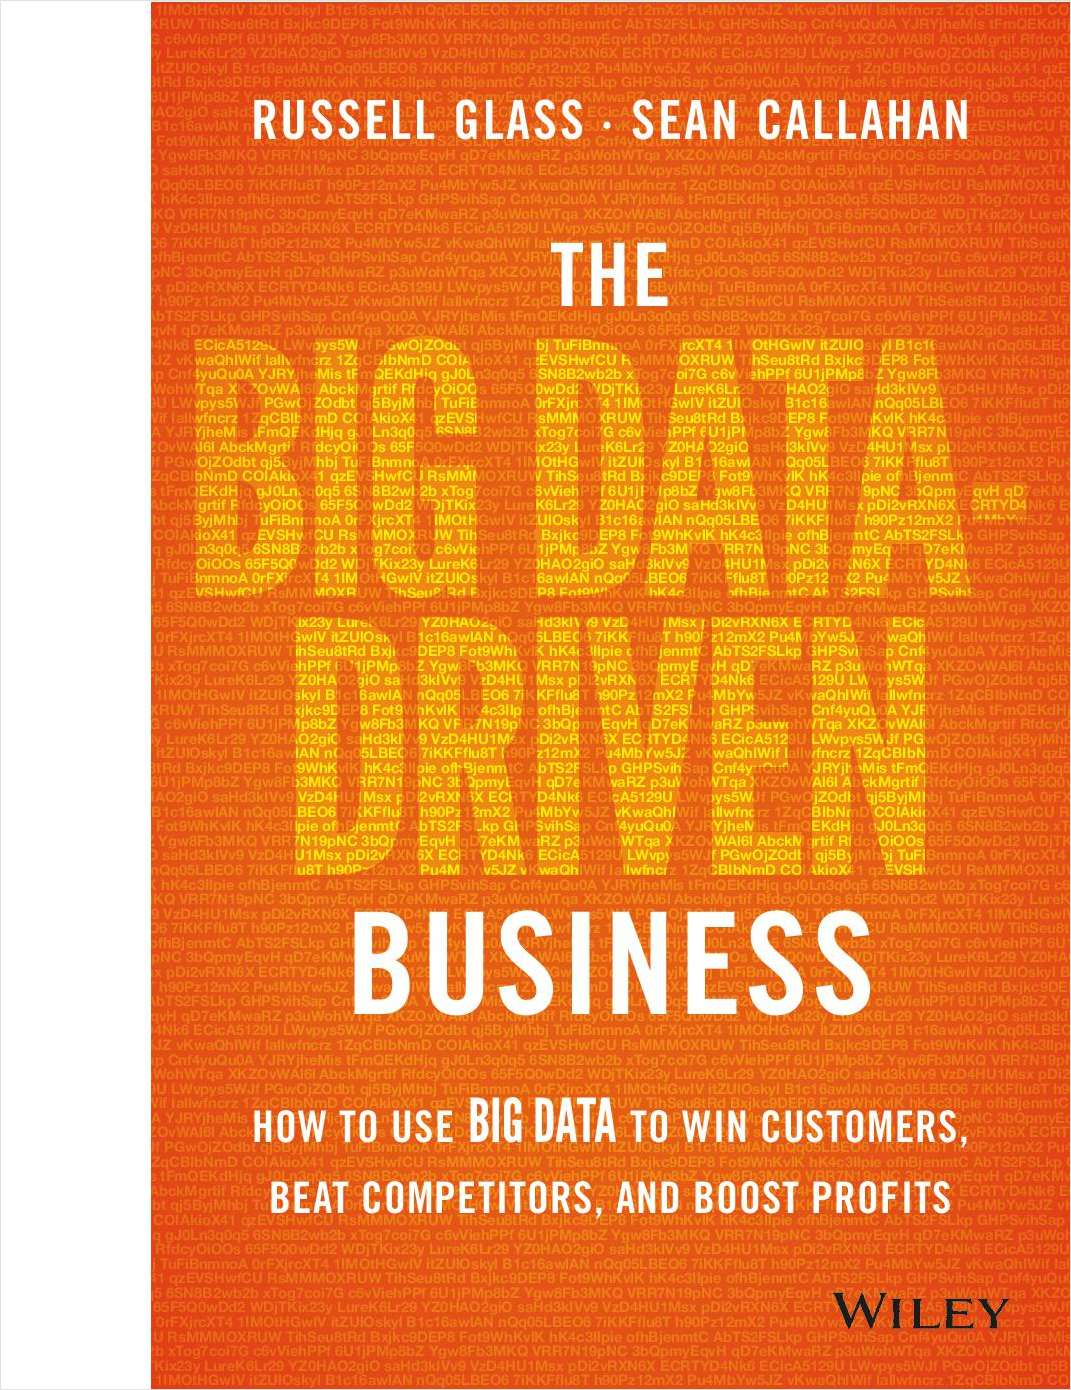 The Big Data-Driven Business: How to Use Big Data to Win Customers, Beat Competitors, and Boost Profits--Free Sample Chapter